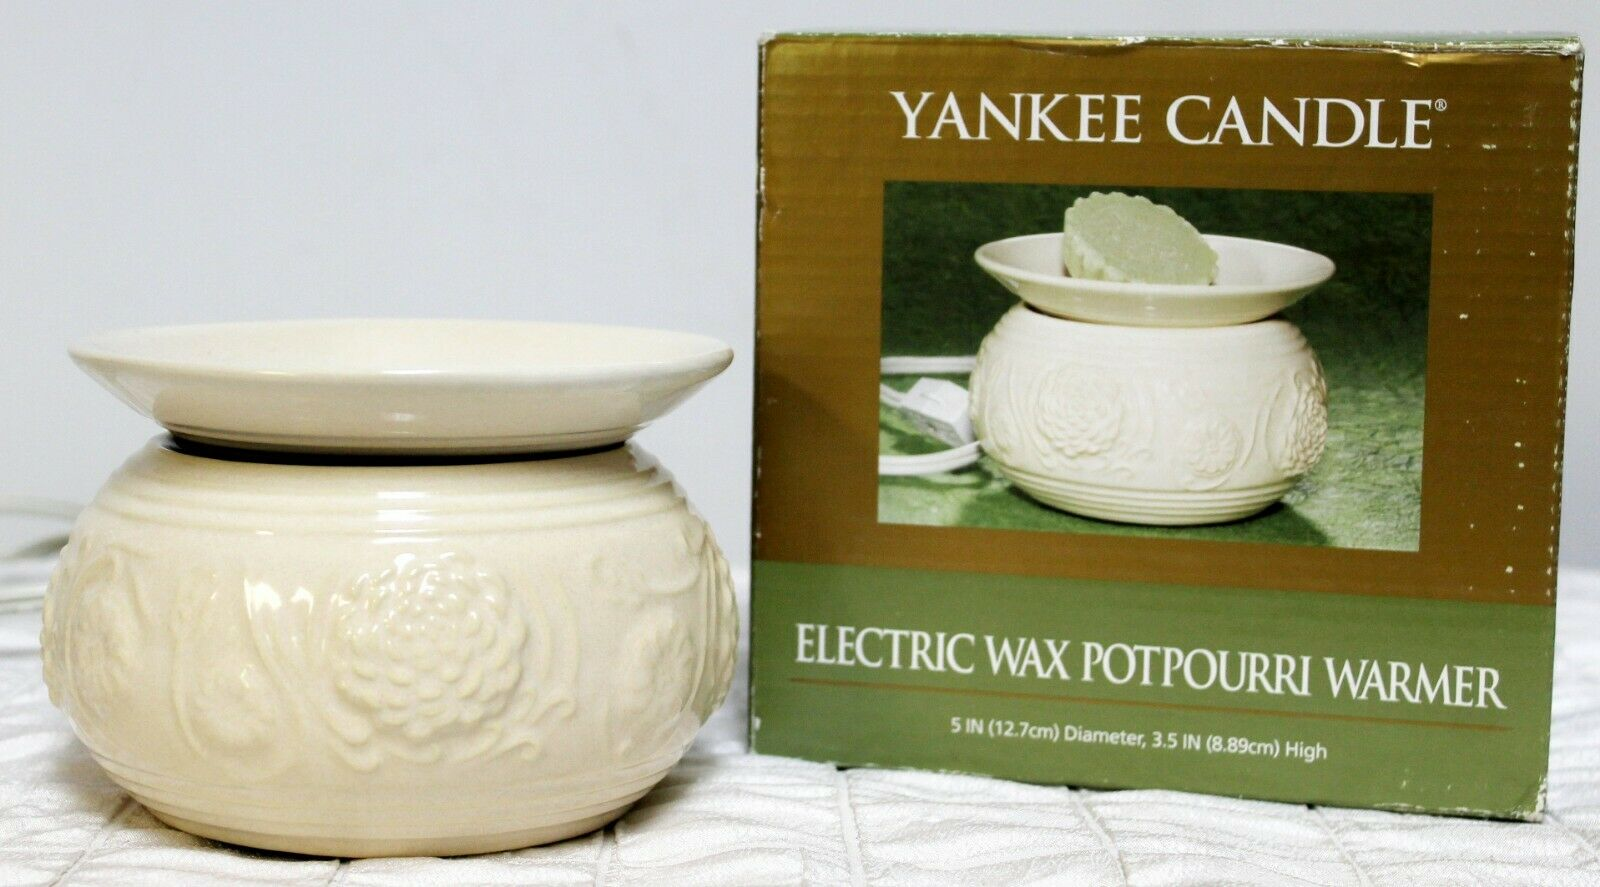 Yankee Candle Wax Warmer Potpourri Electric Oil White Flowers Pinecones